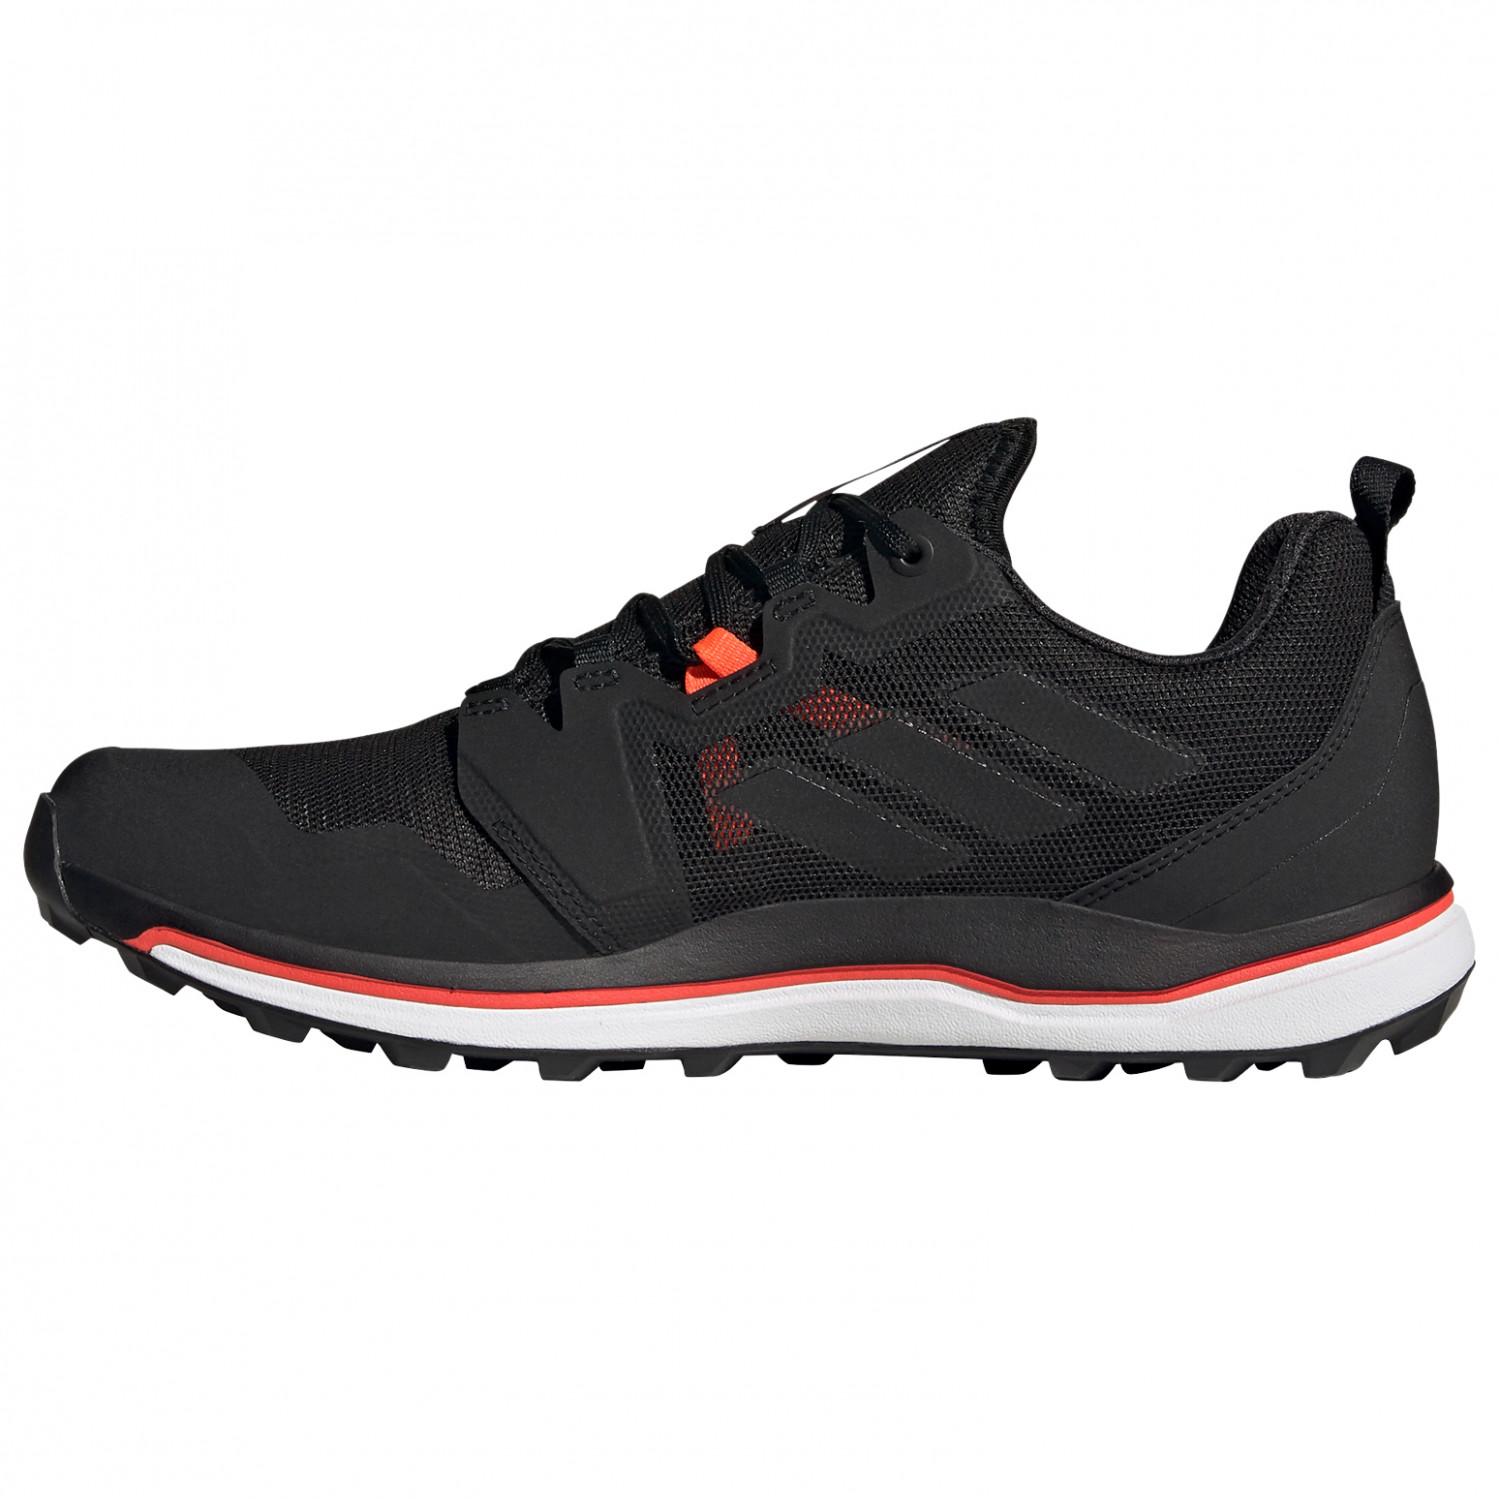 Adidas Shoes Winter